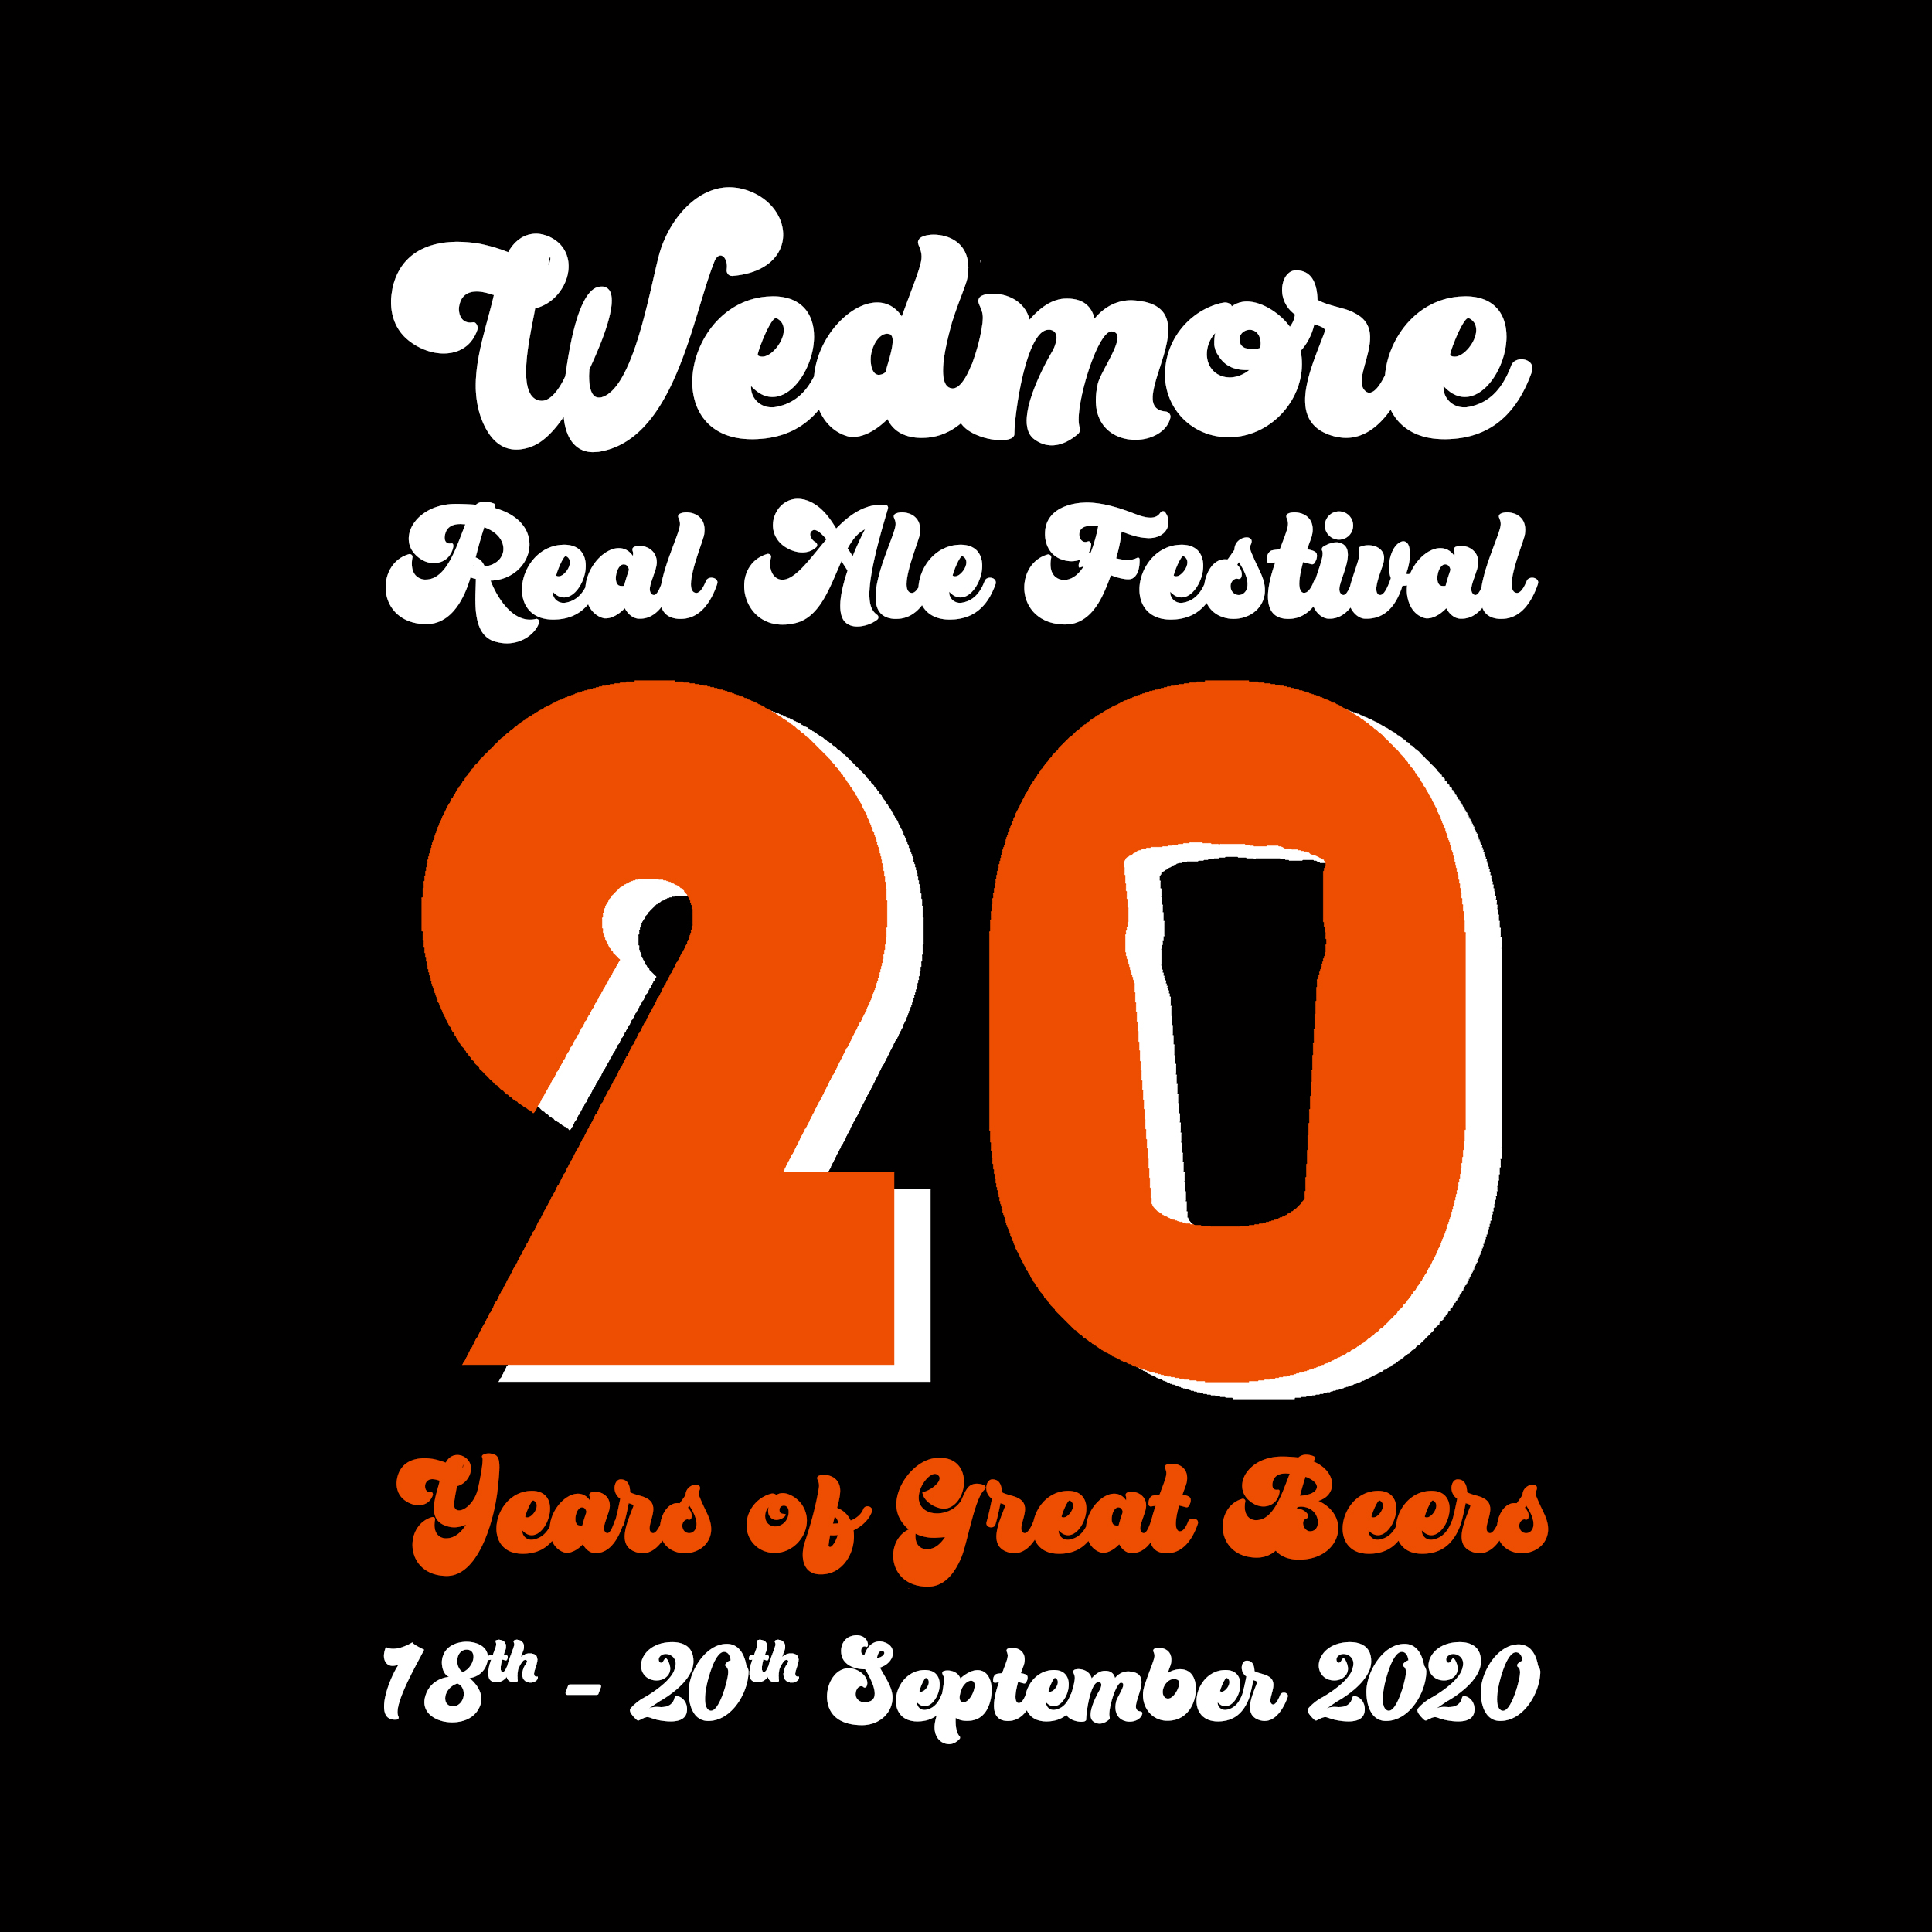 Wedmore Real Ale Festival